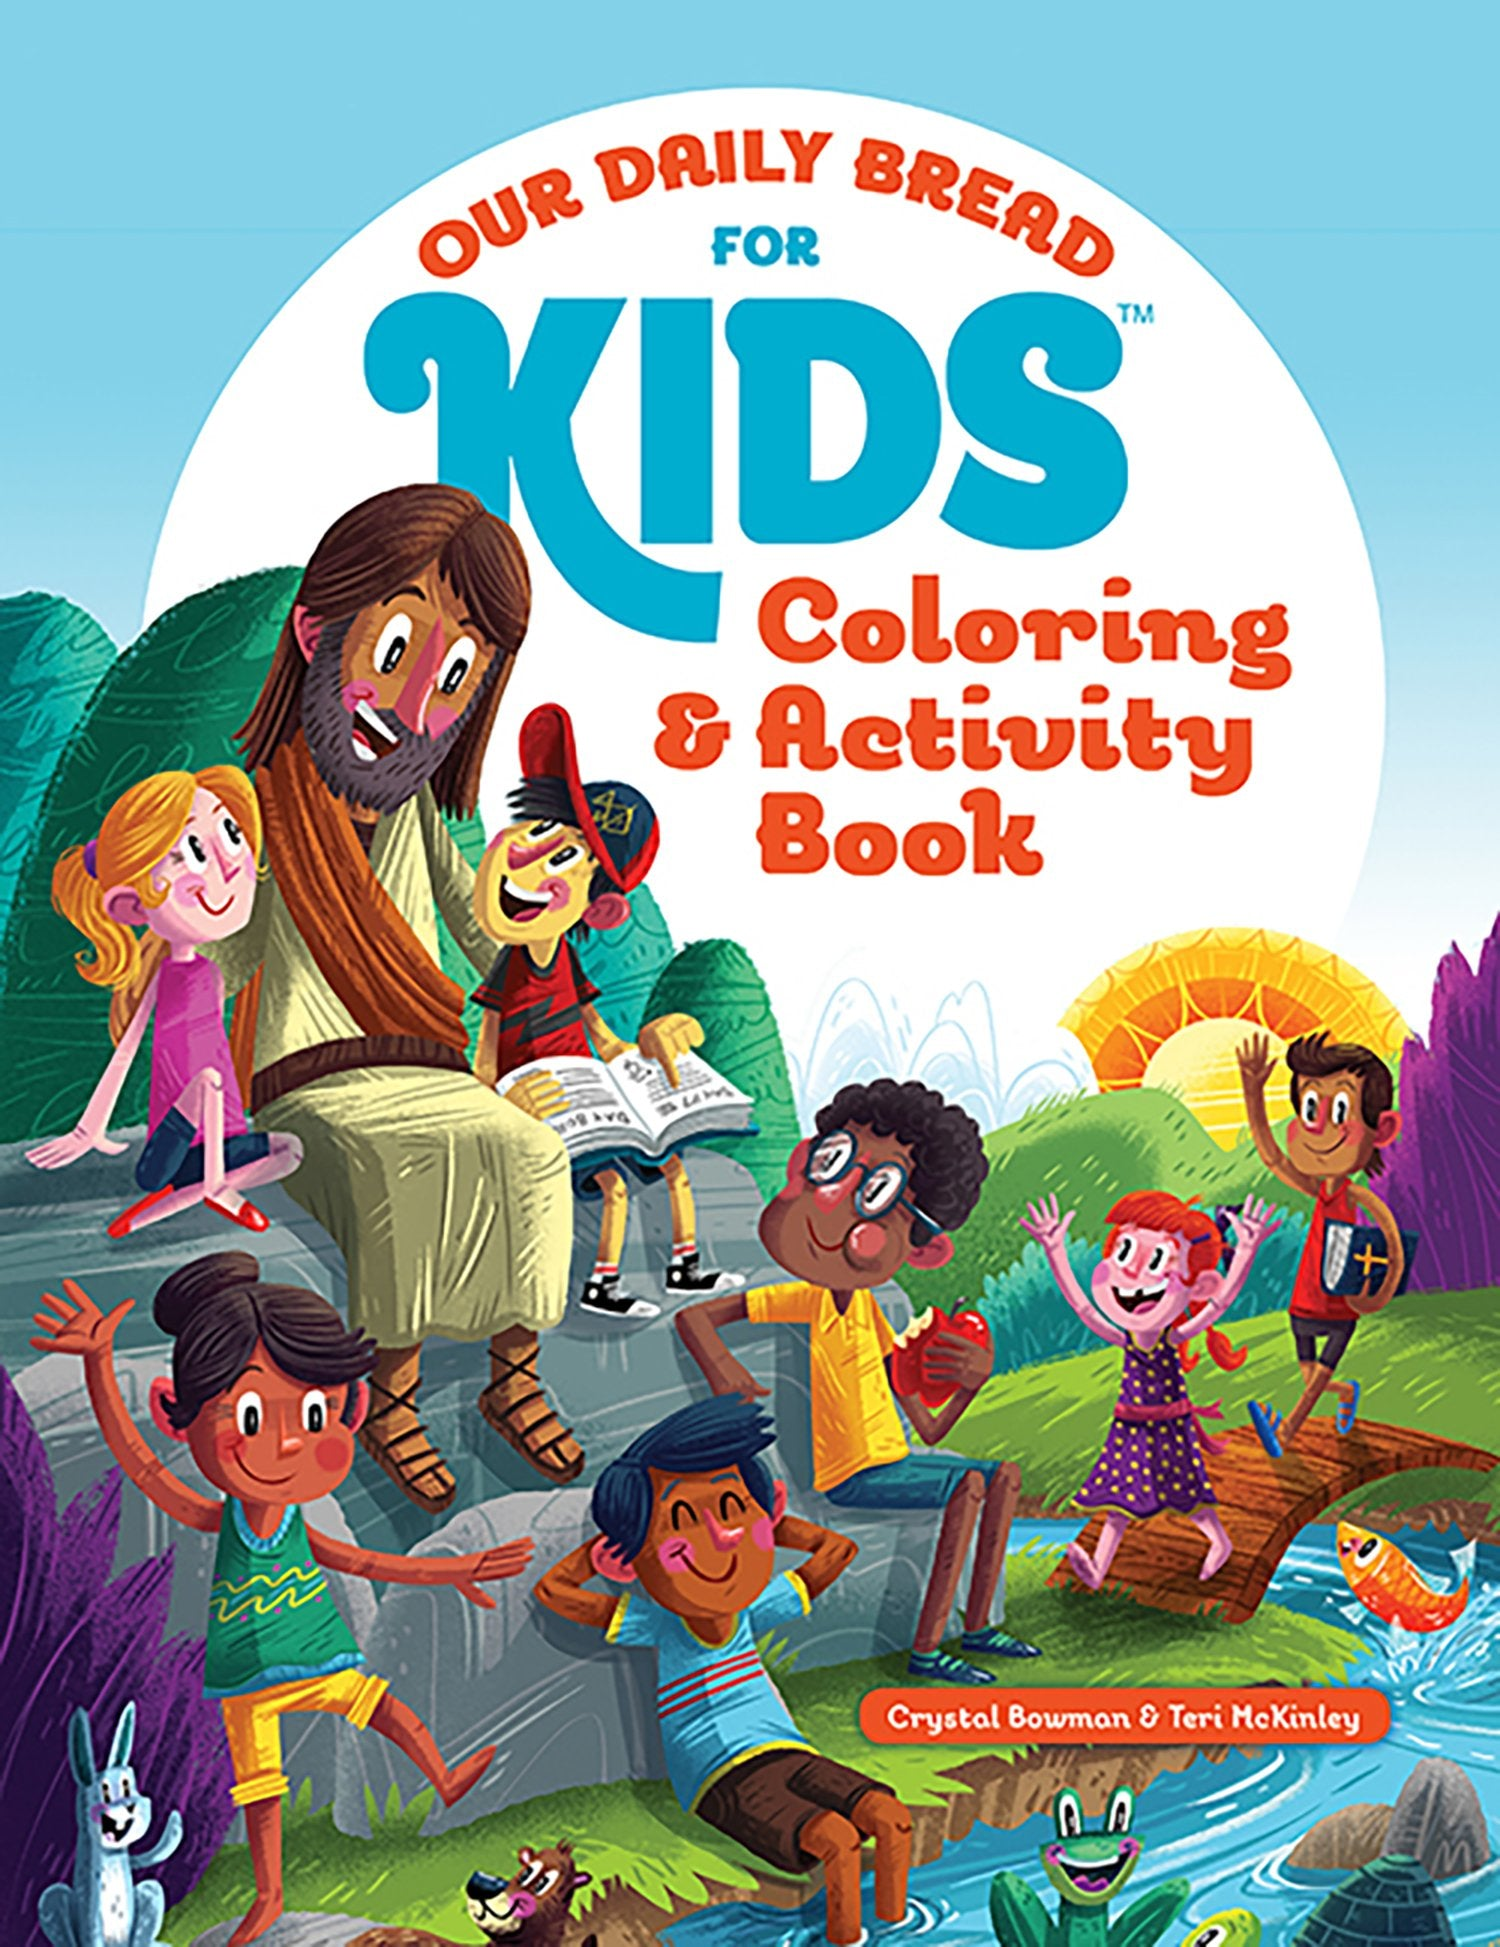 Our Daily Bread for Kids Coloring & Activity Book